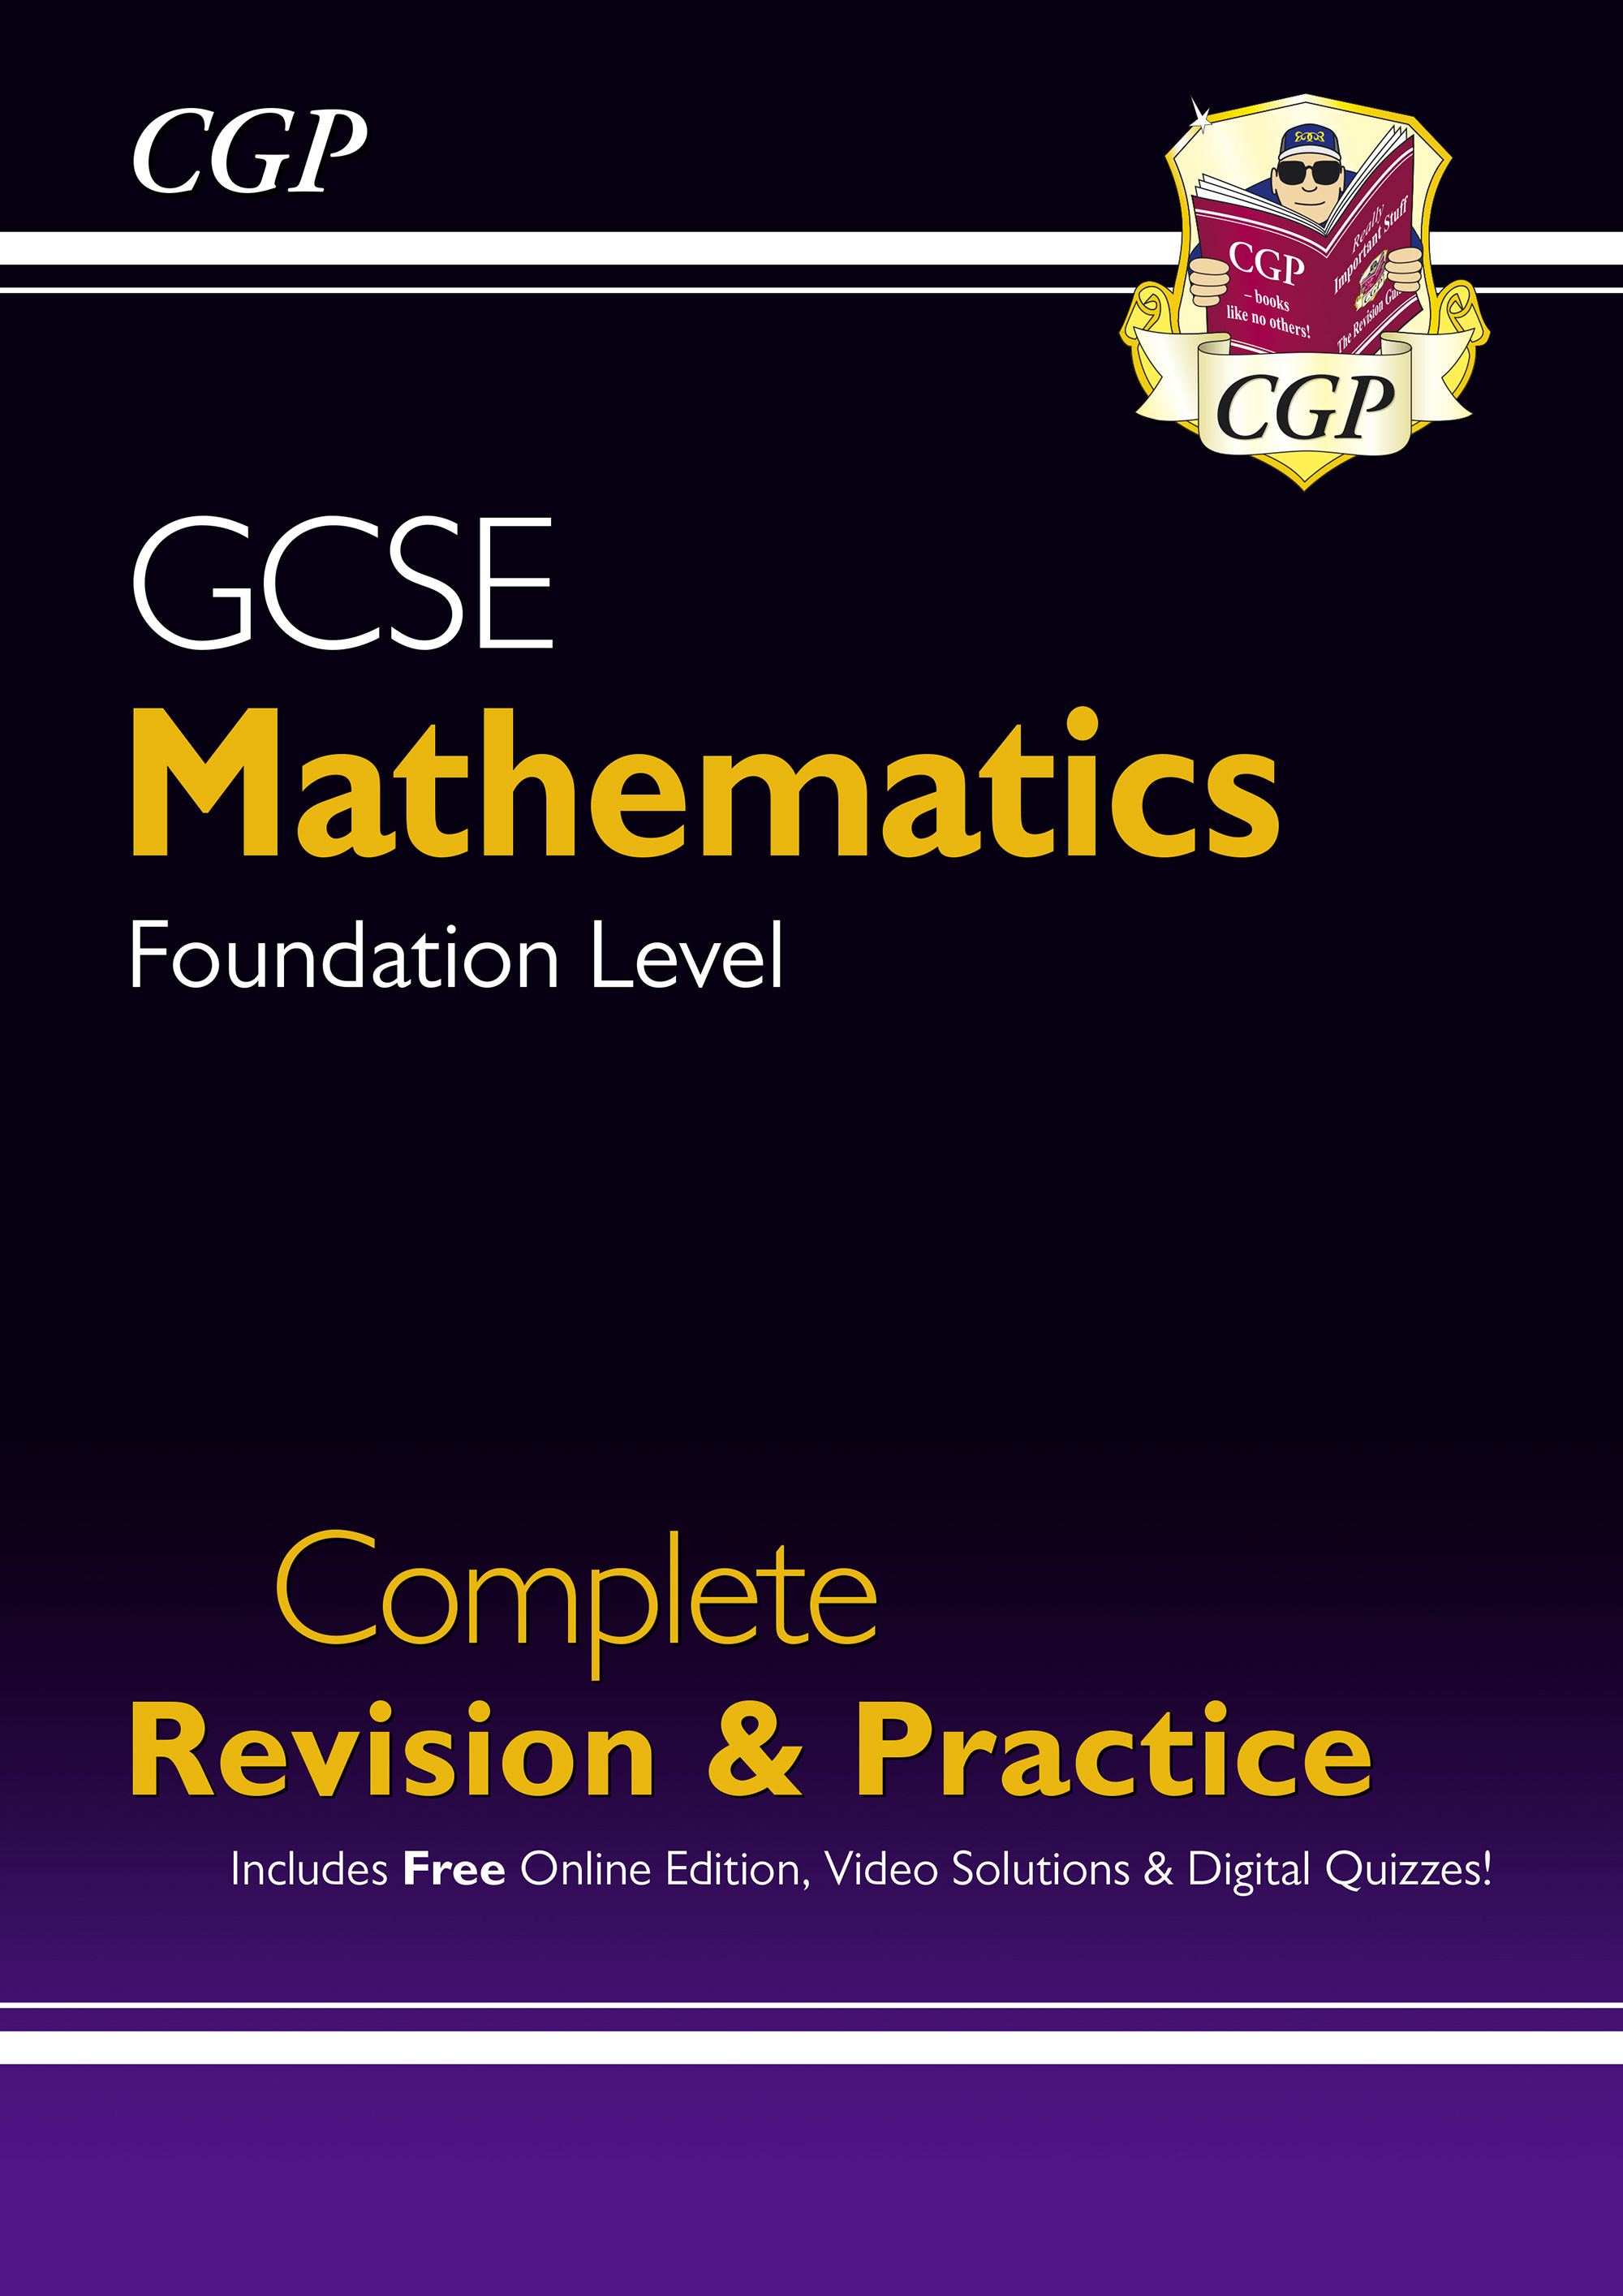 MFS48D - New 2021 GCSE Maths Complete Revision & Practice: Foundation Online Ed inc Videos & Quizzes